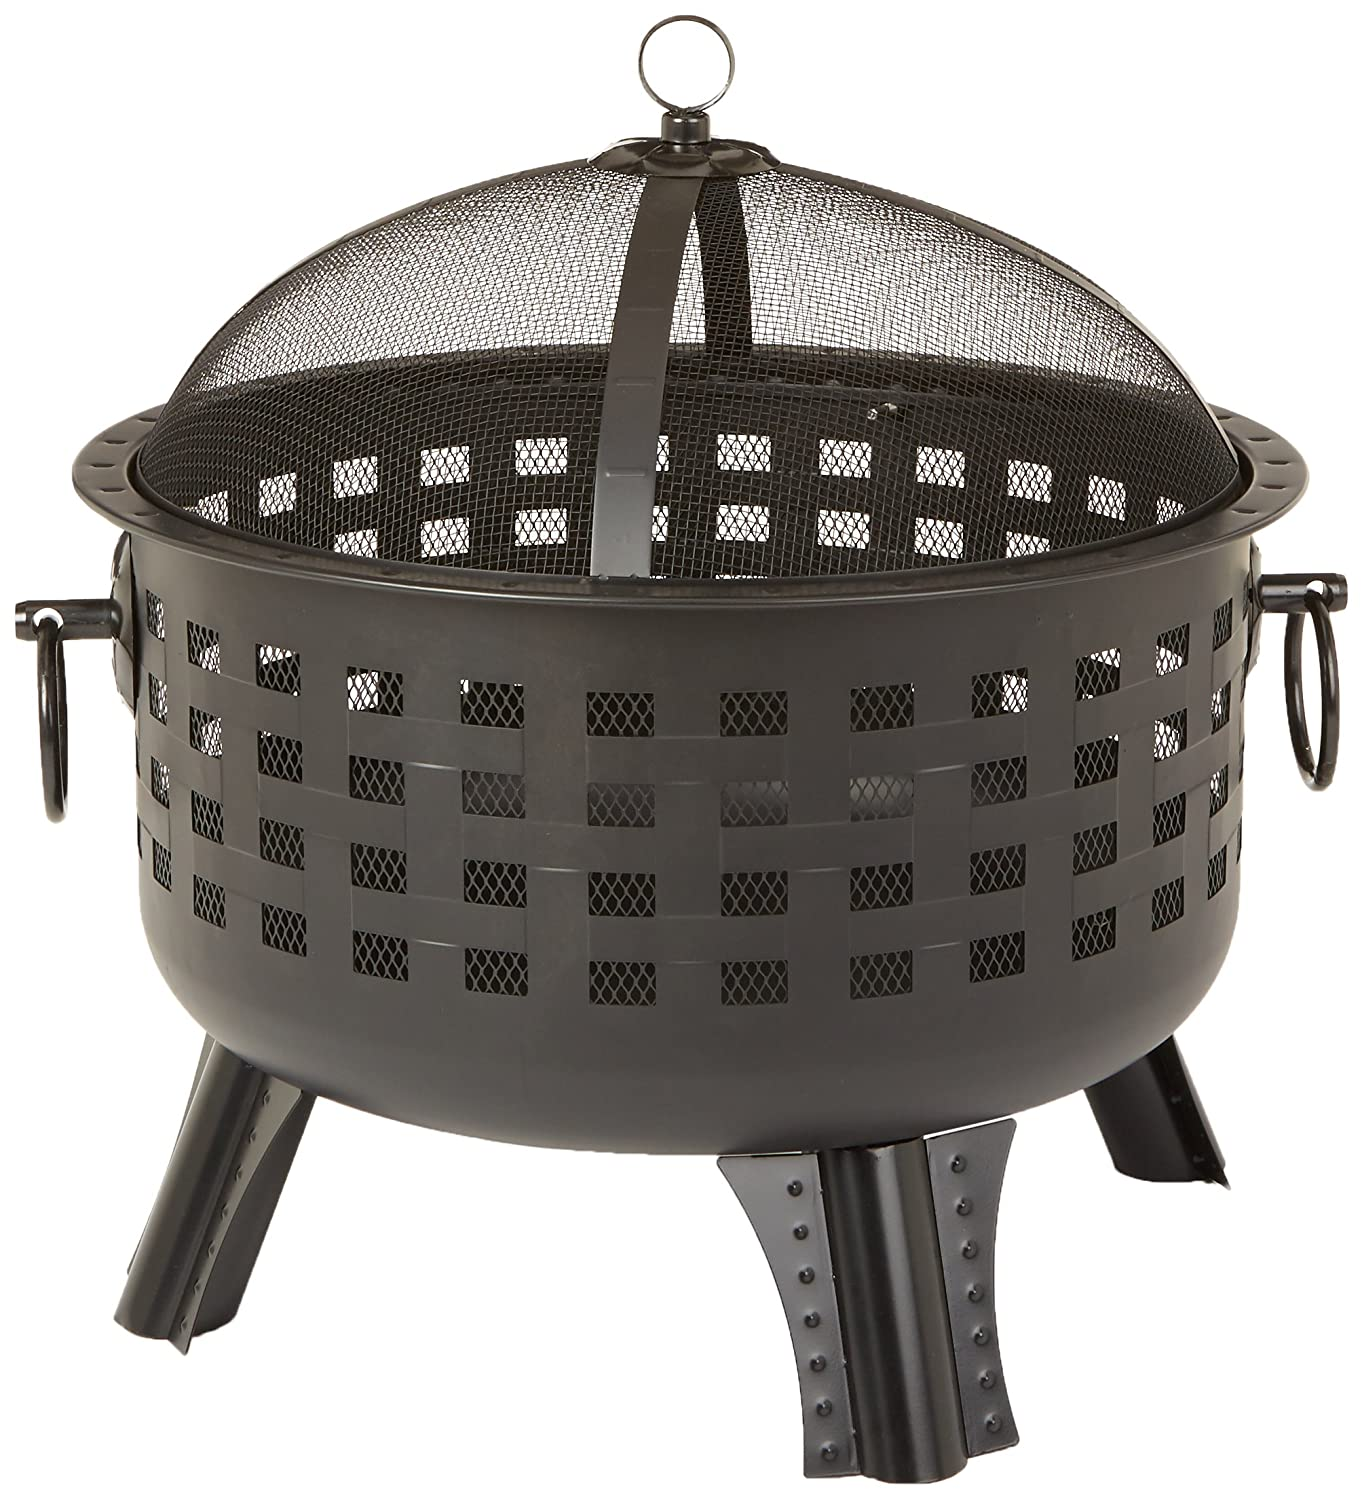 AmazonBasics Steel Lattice Fire Pit, 23-1/2-Inch AB-23-LT-FP